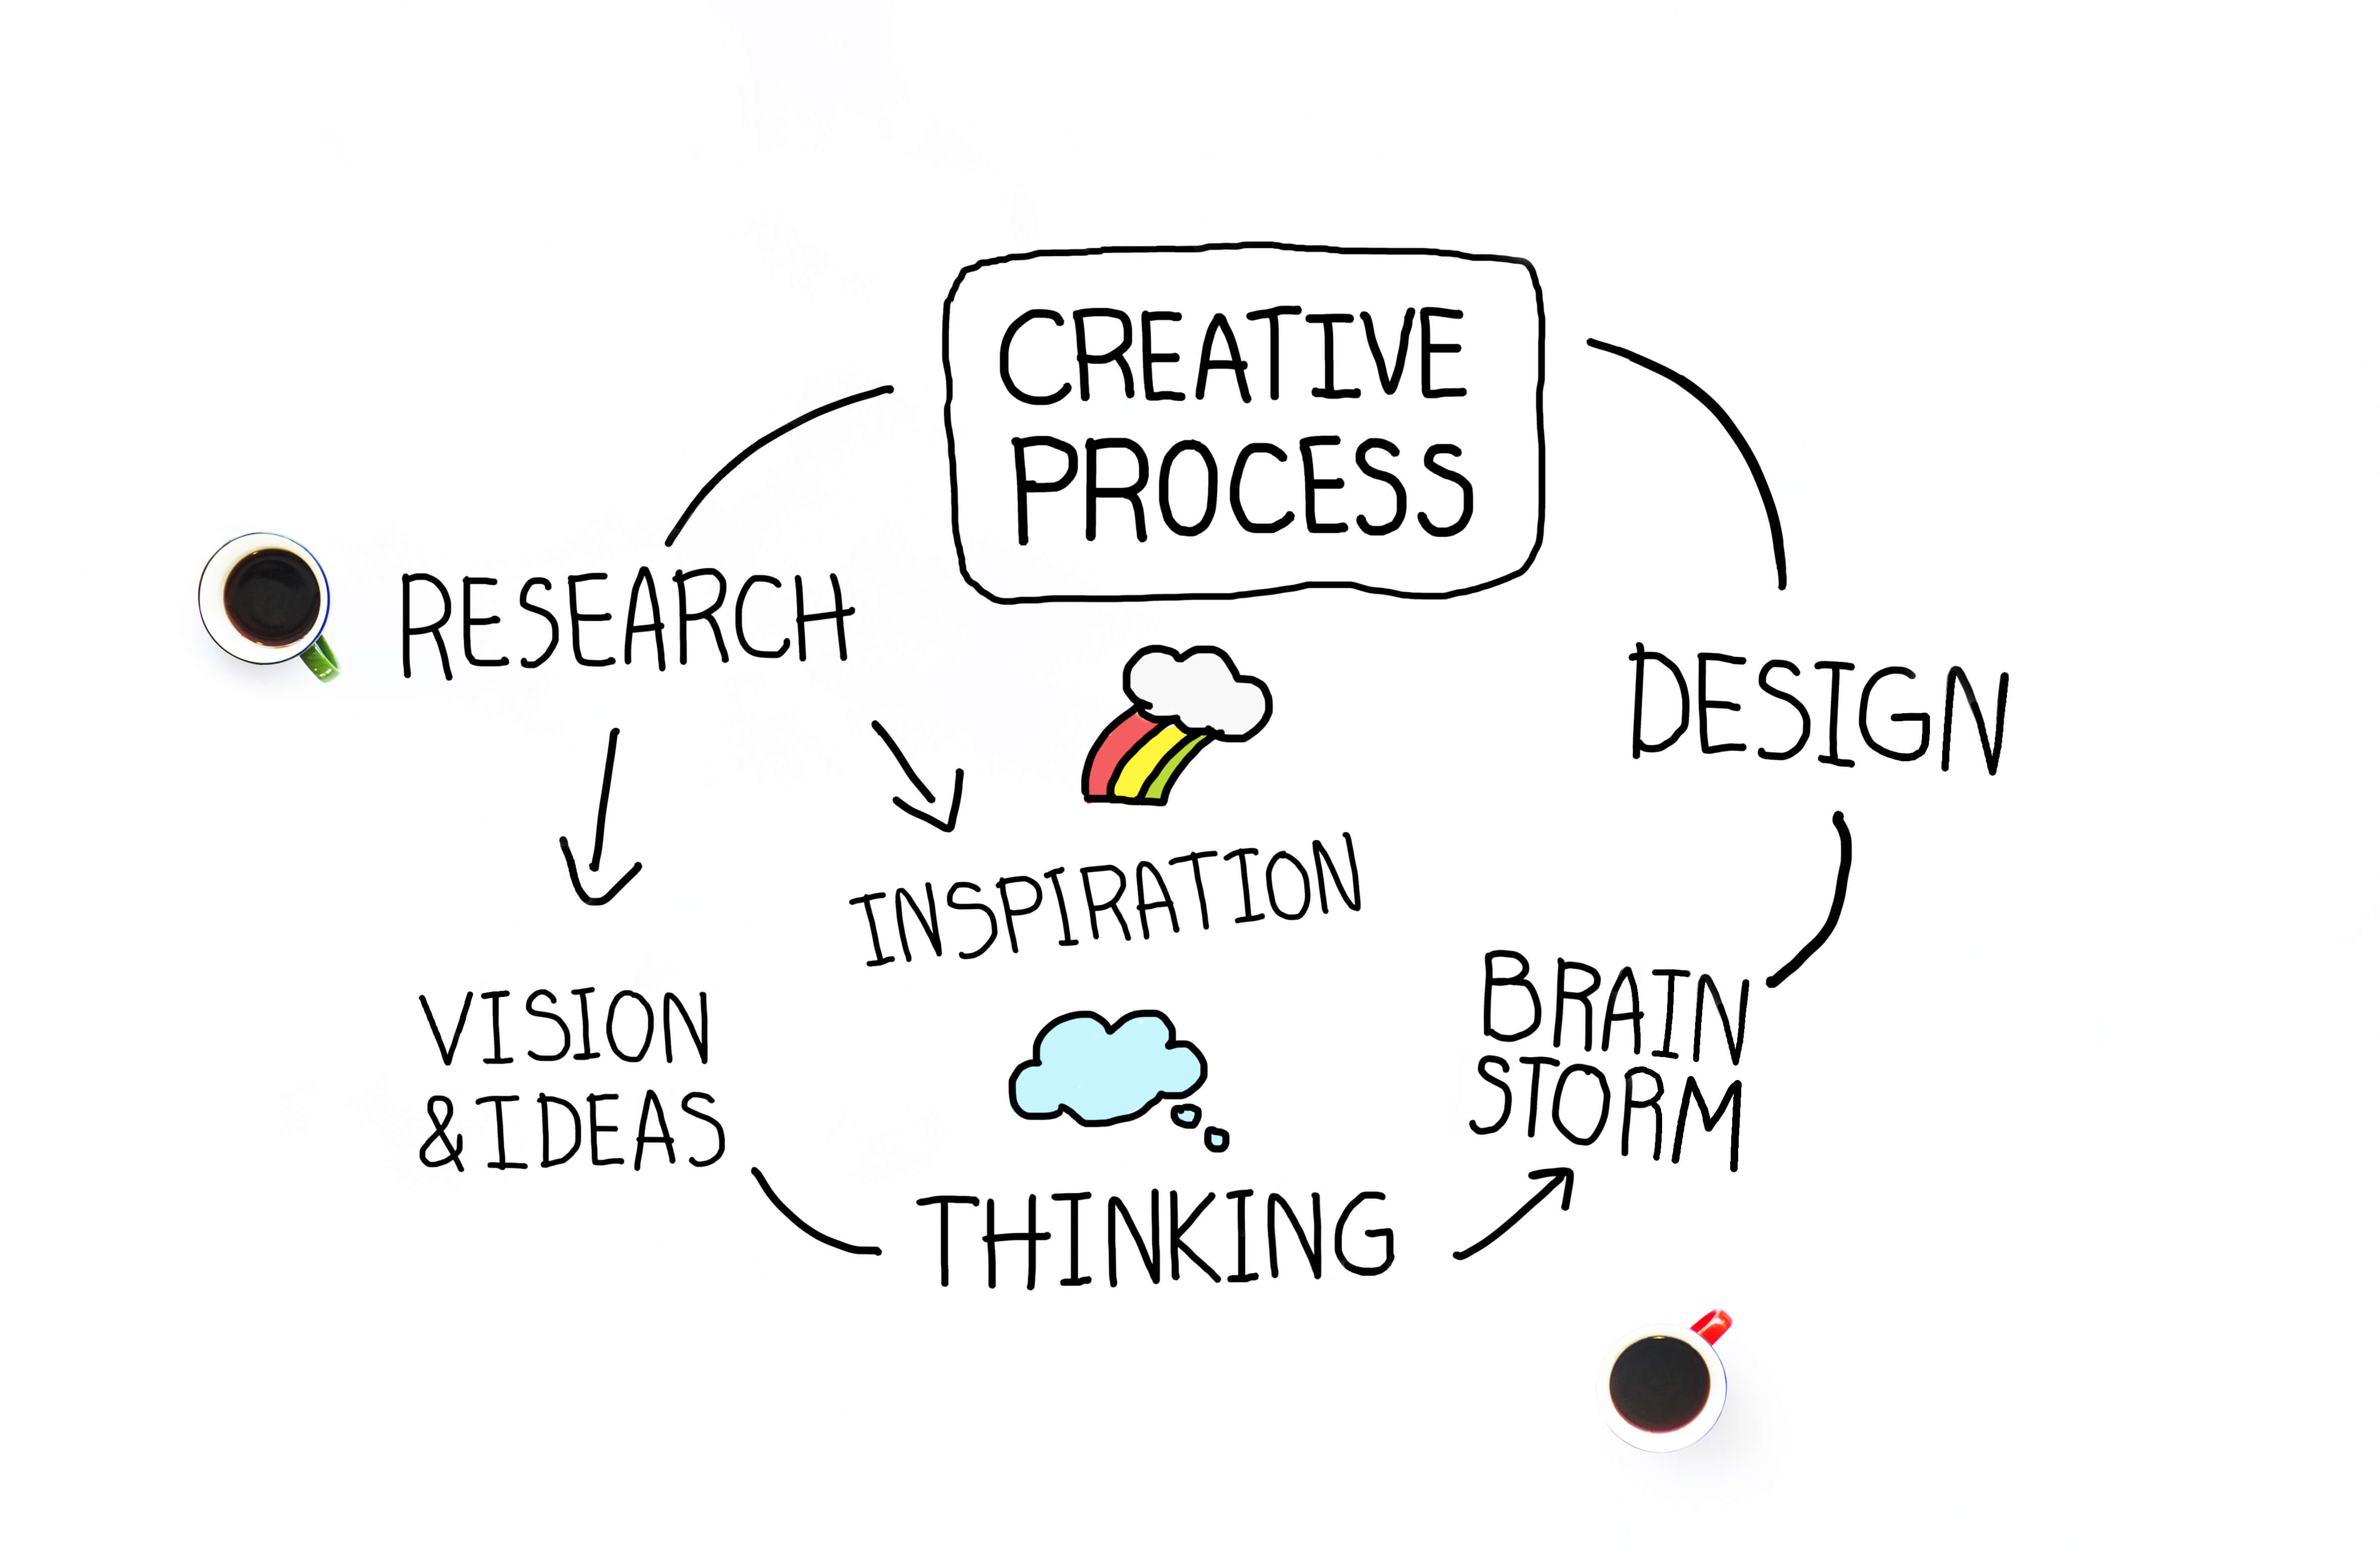 Info graphic about the creative process.. Research, vision & ideas, thinking, inspiration, brainstorm, design